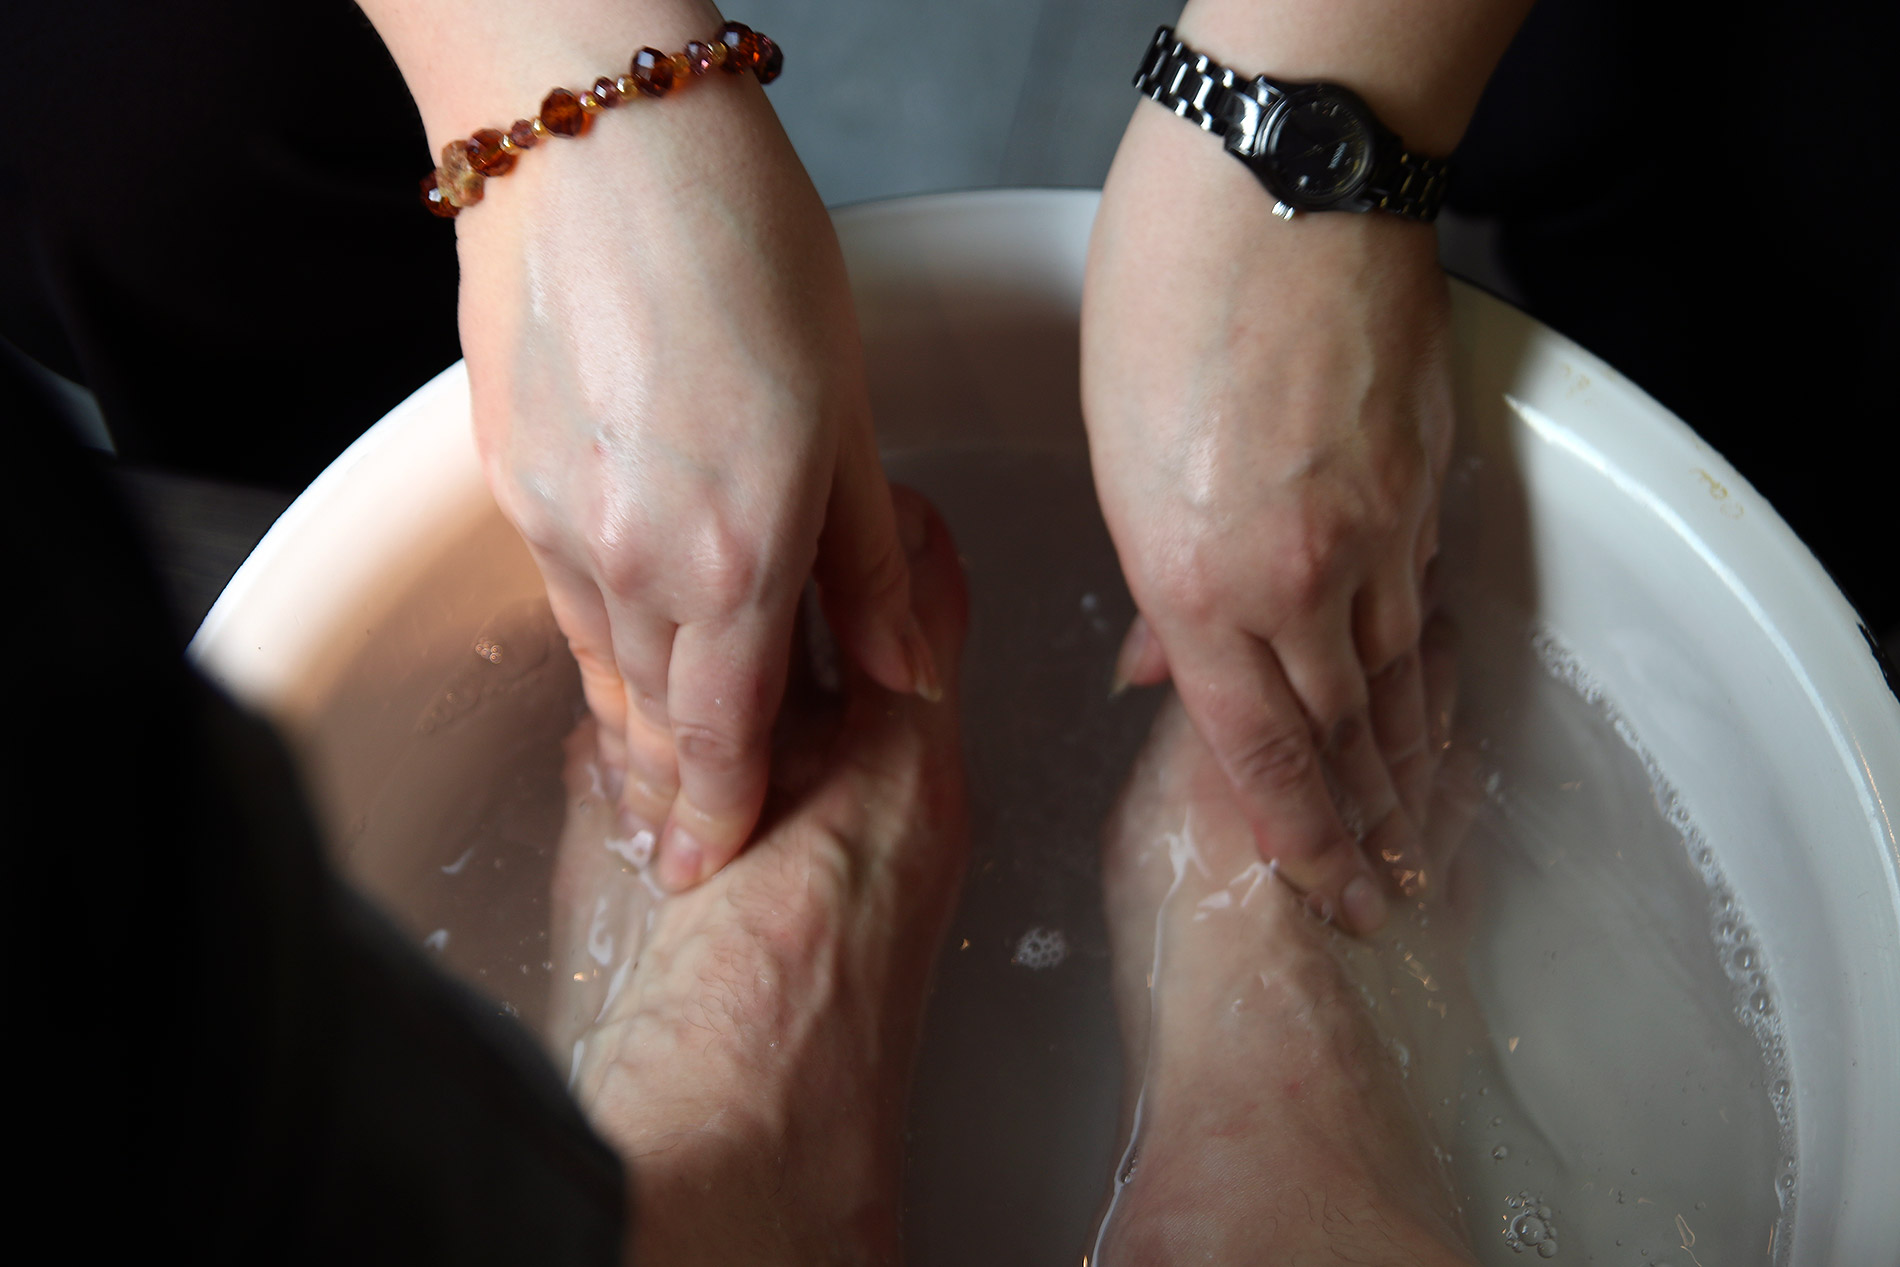 I Got My Feet Washed For Easter By a Priest